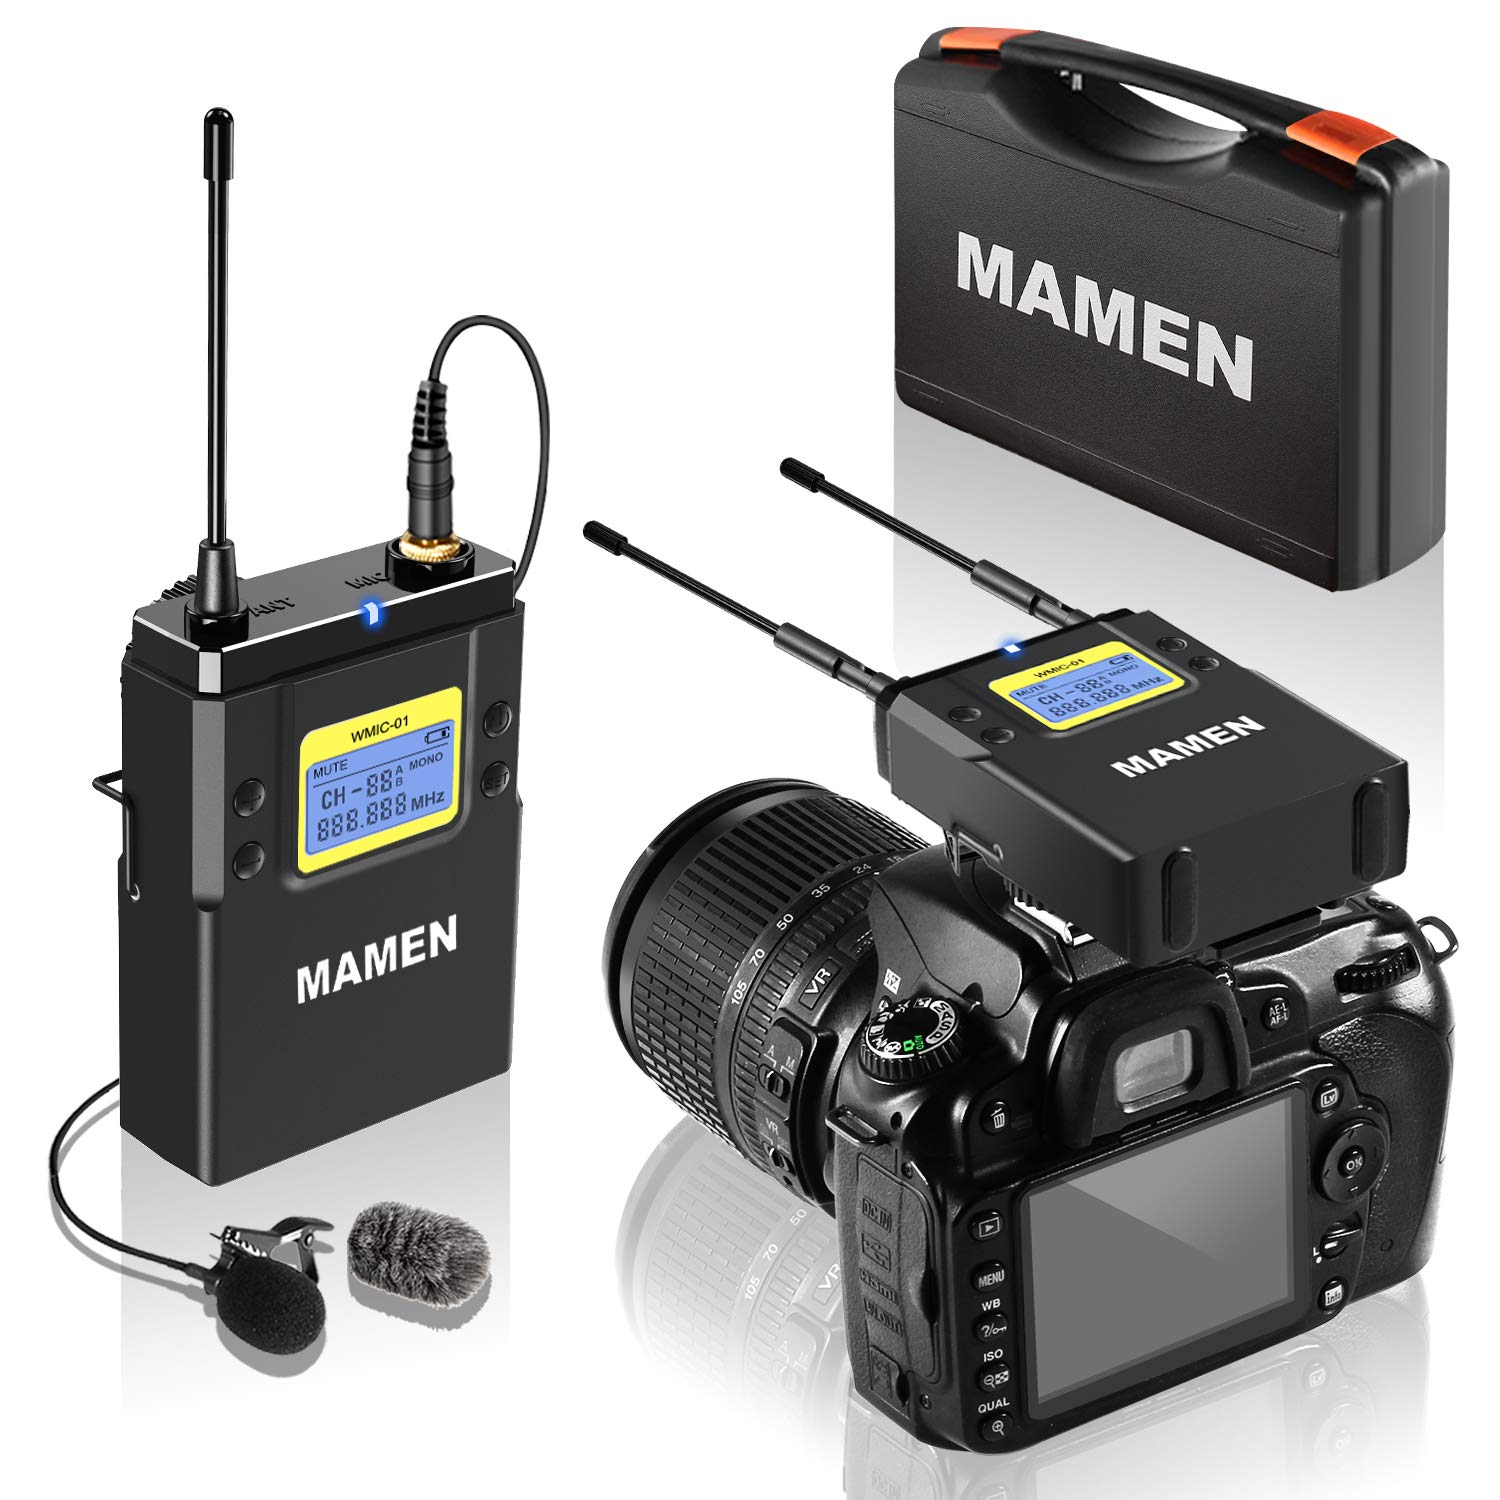 MAMEN 50-Channel UHF Wireless Lavalier Microphone System with 1 Receiver, 1 Transmitters, Dual Wireless Lapel Mics for iPhone DSLR Cameras (330' ft Audio Range)